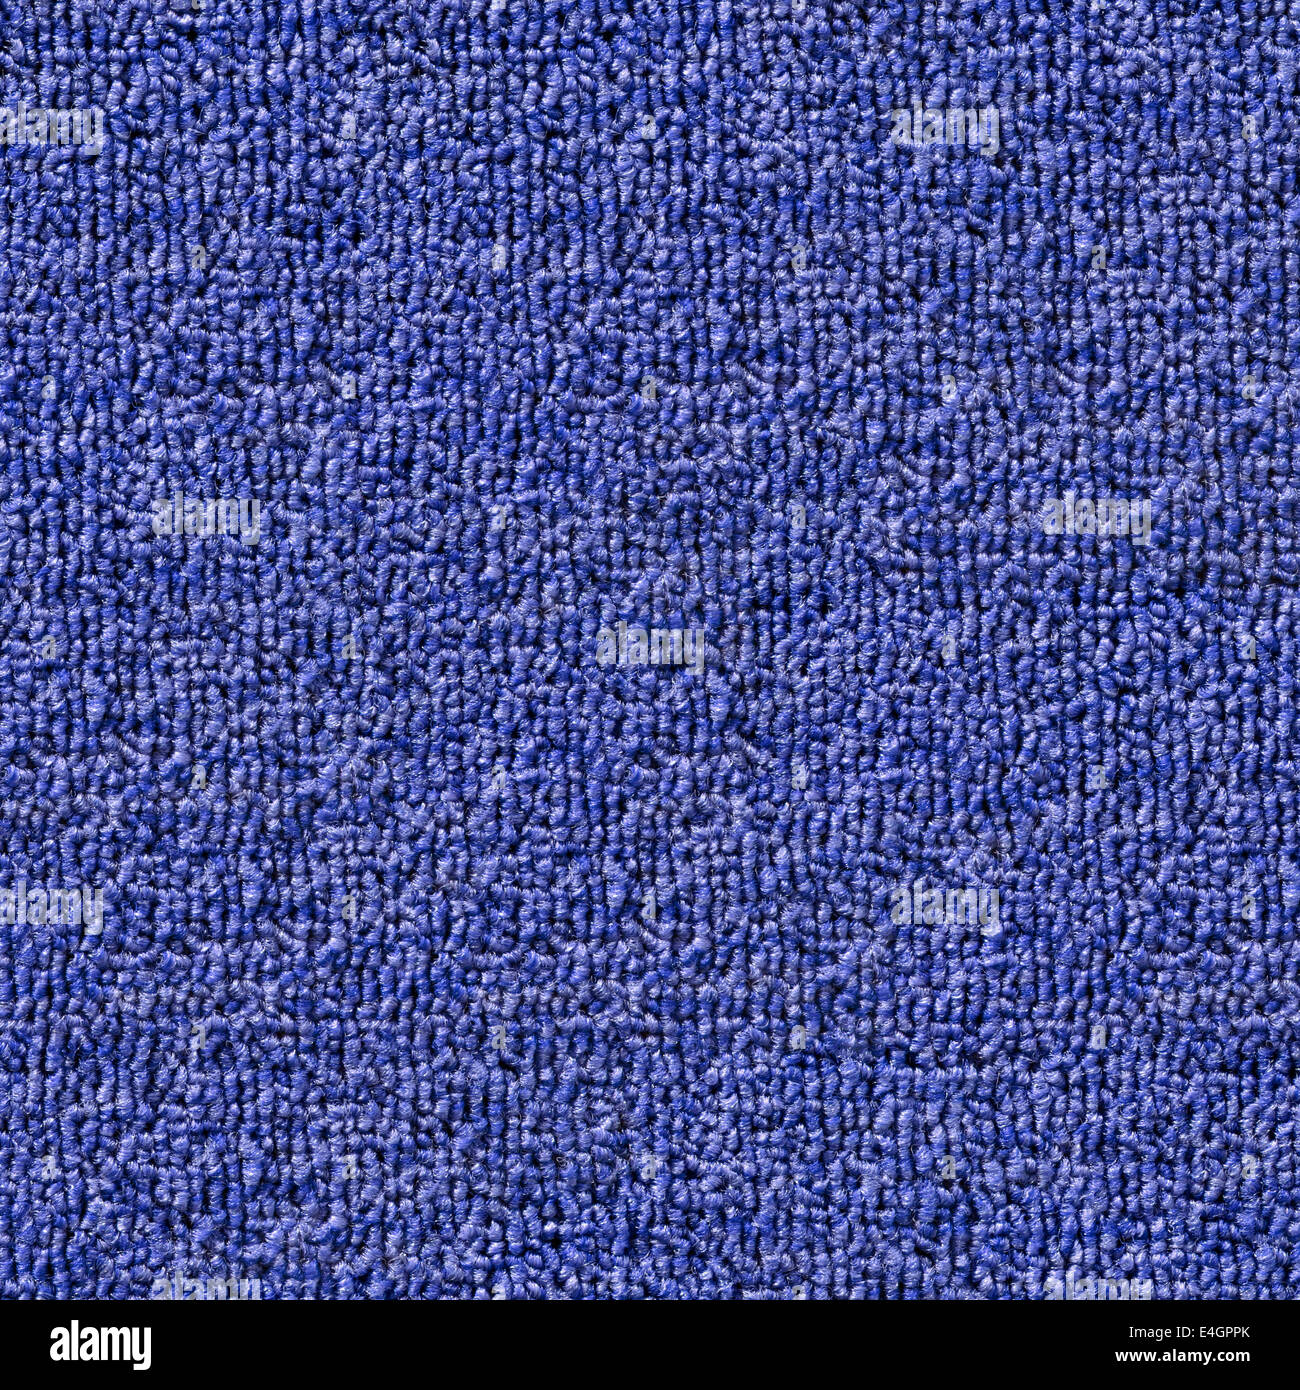 Blue Carpet Highly Detailed Seamless Blue Carpet Texture Tile Stock Photo